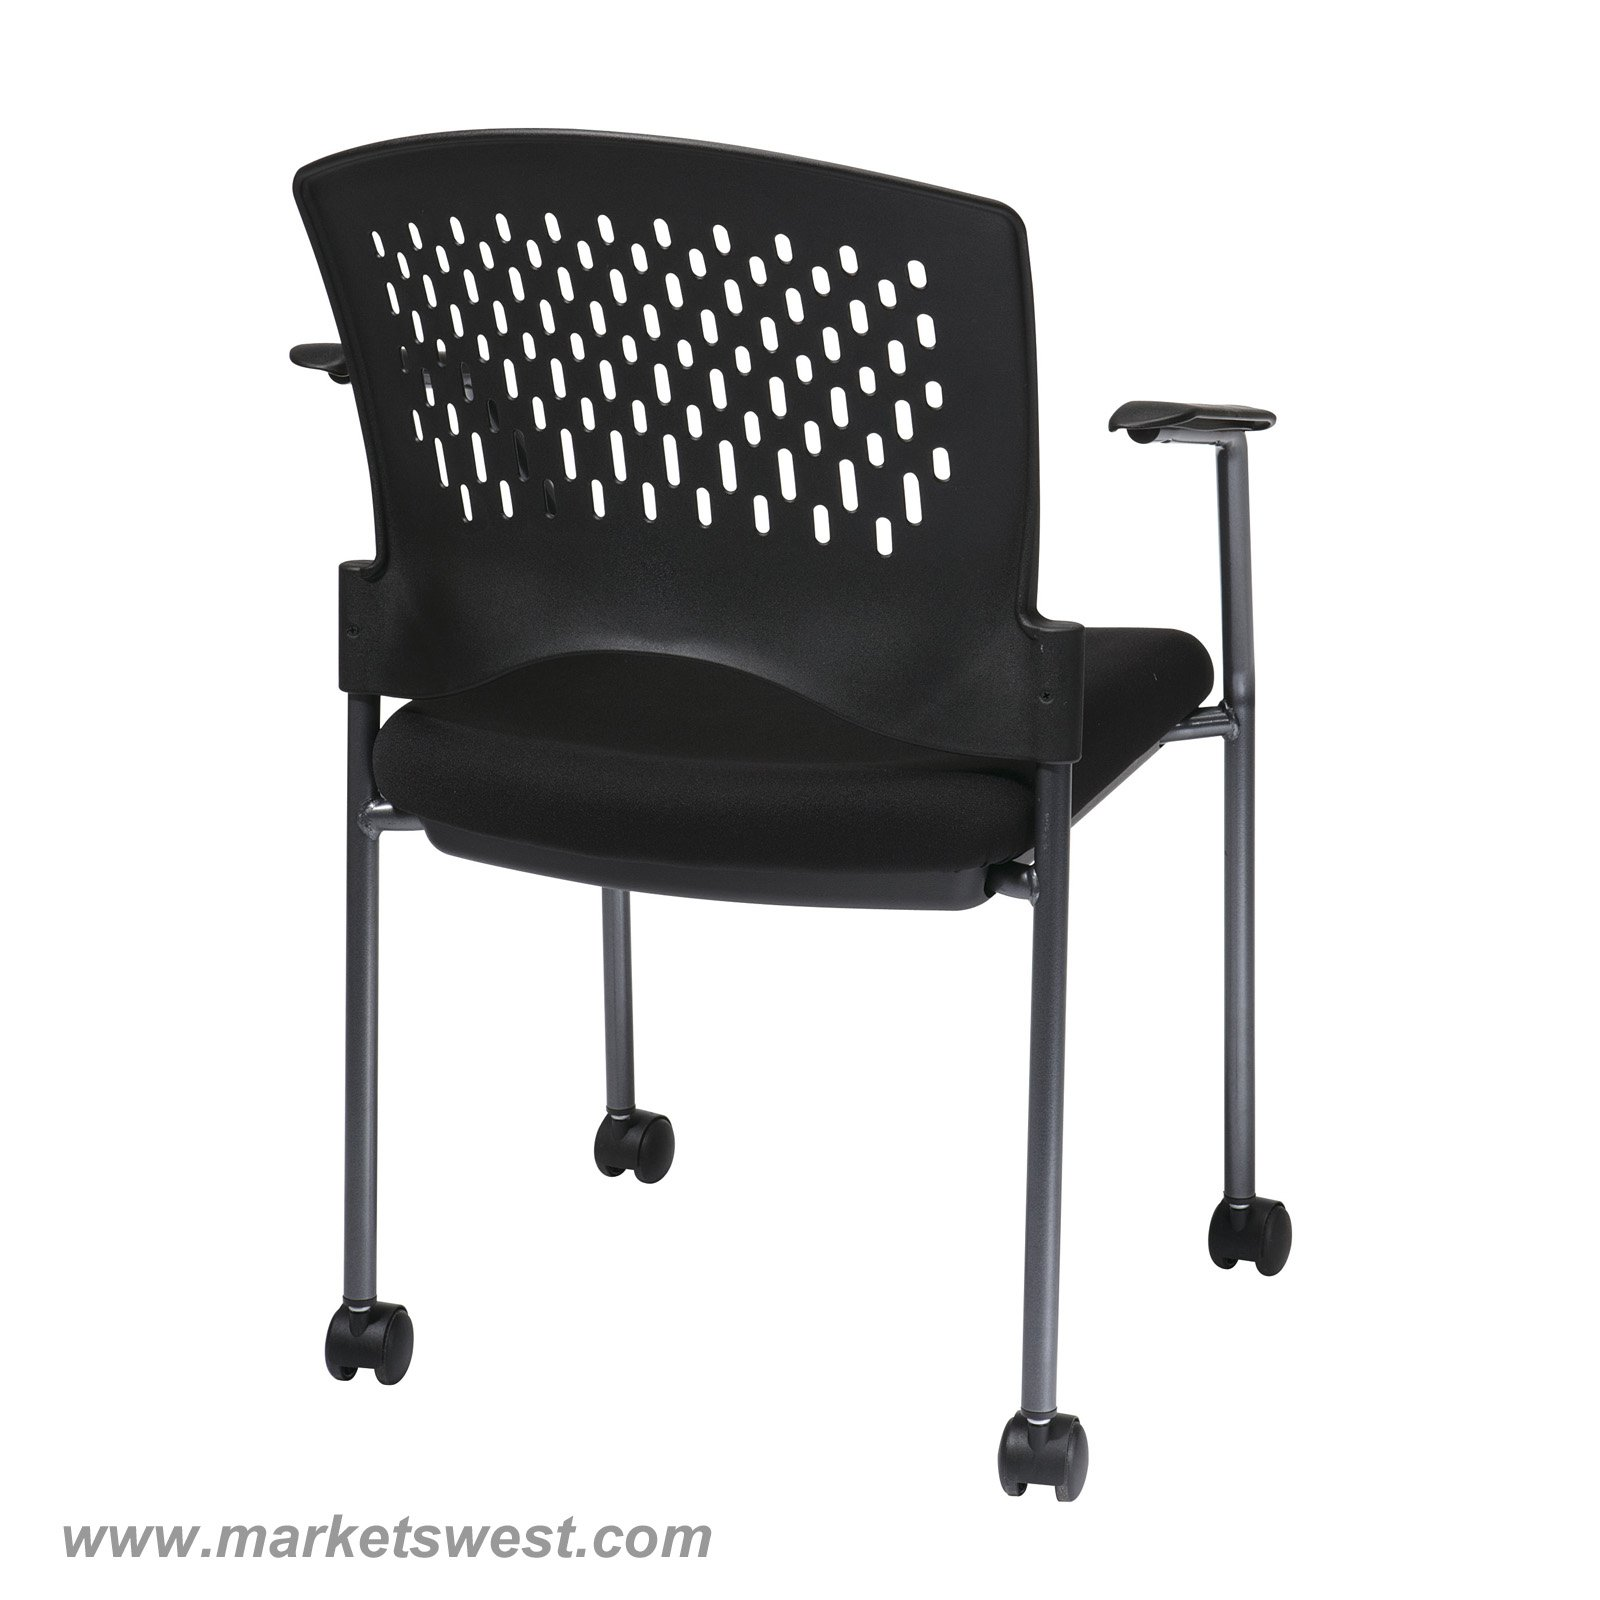 Pro-Line II Titanium Finish Rolling Black Visitors Chair with Casters Arms and Ventilated Plastic Wrap Around Back  sc 1 st  Markets West Office Furniture & Pro-Line II Titanium Finish Rolling Black Visitors Chair with ...